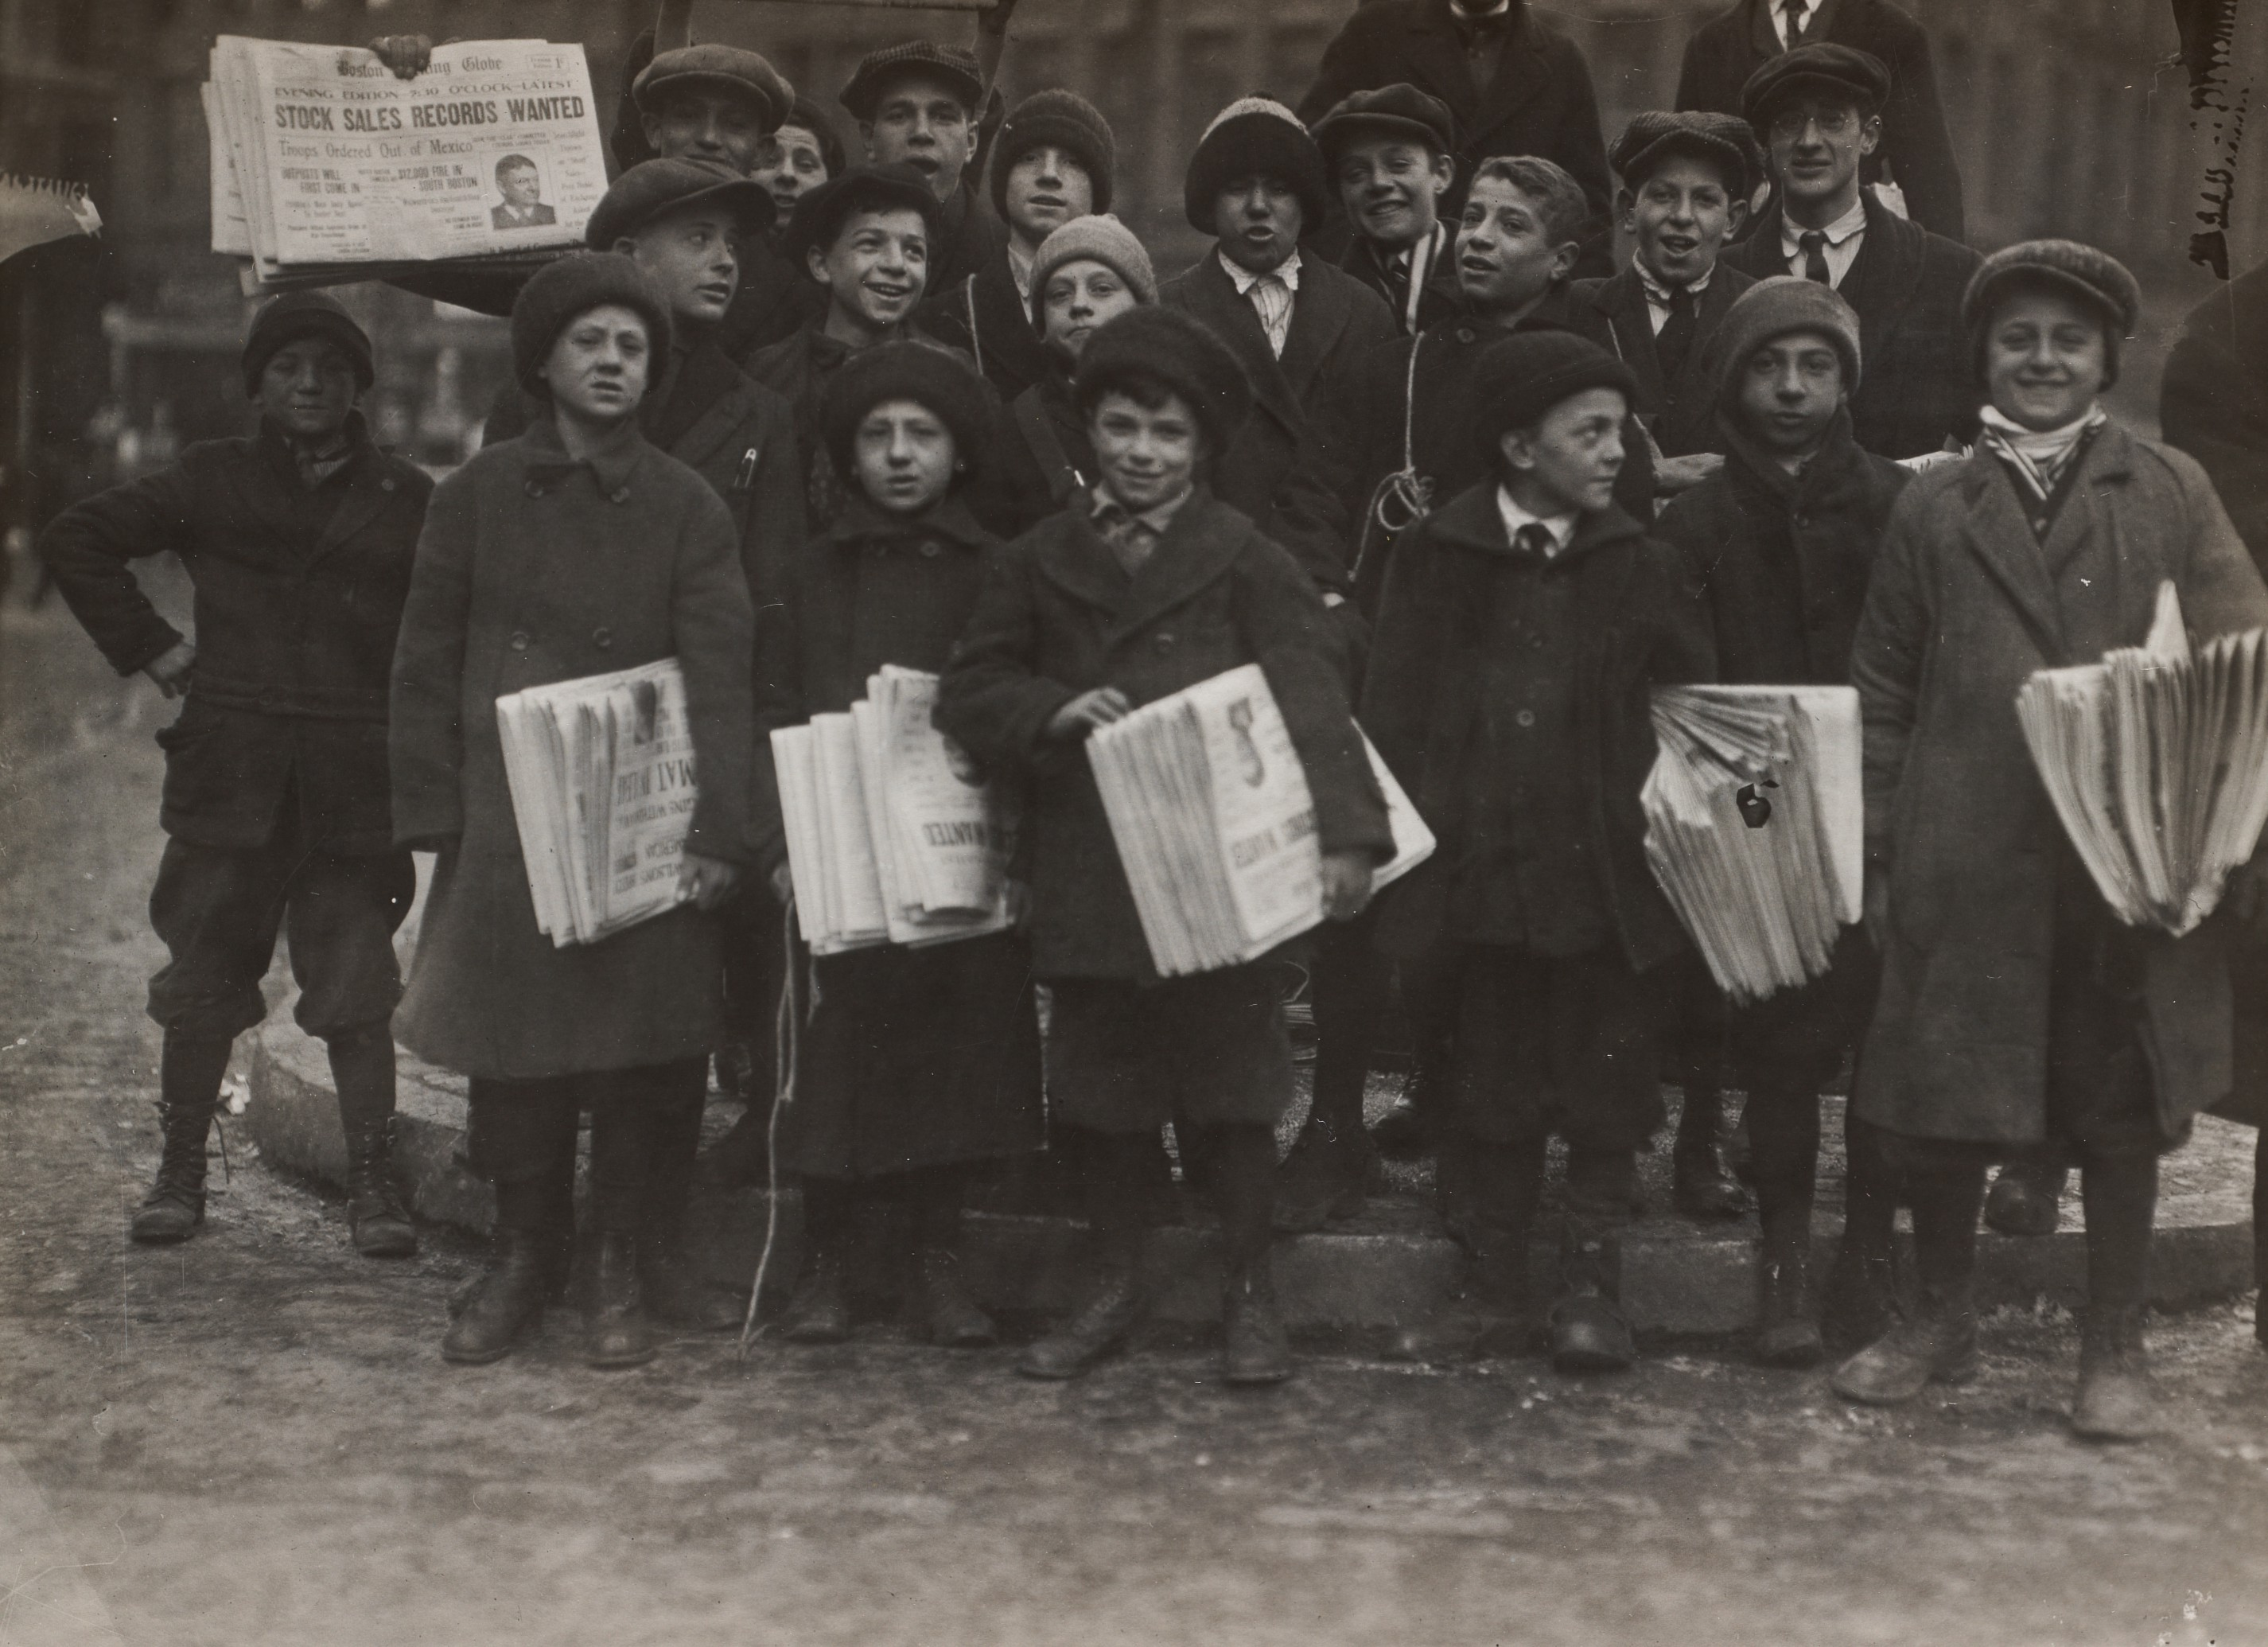 A group stands on a street, with some holding stacks of newspapers.